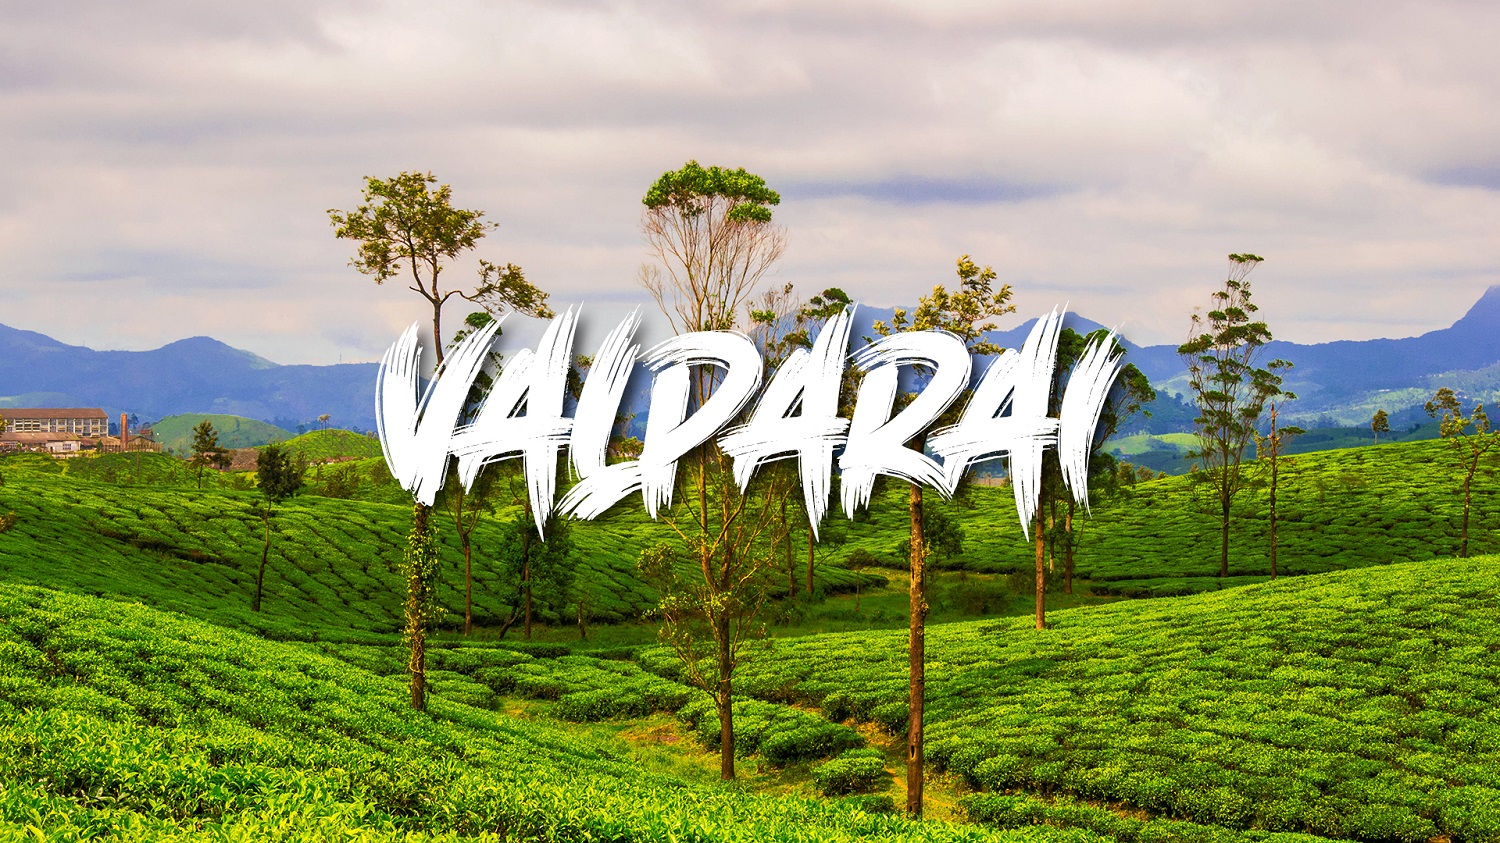 Valparai - A Heavenly Hill station amidst Flora and Fauna